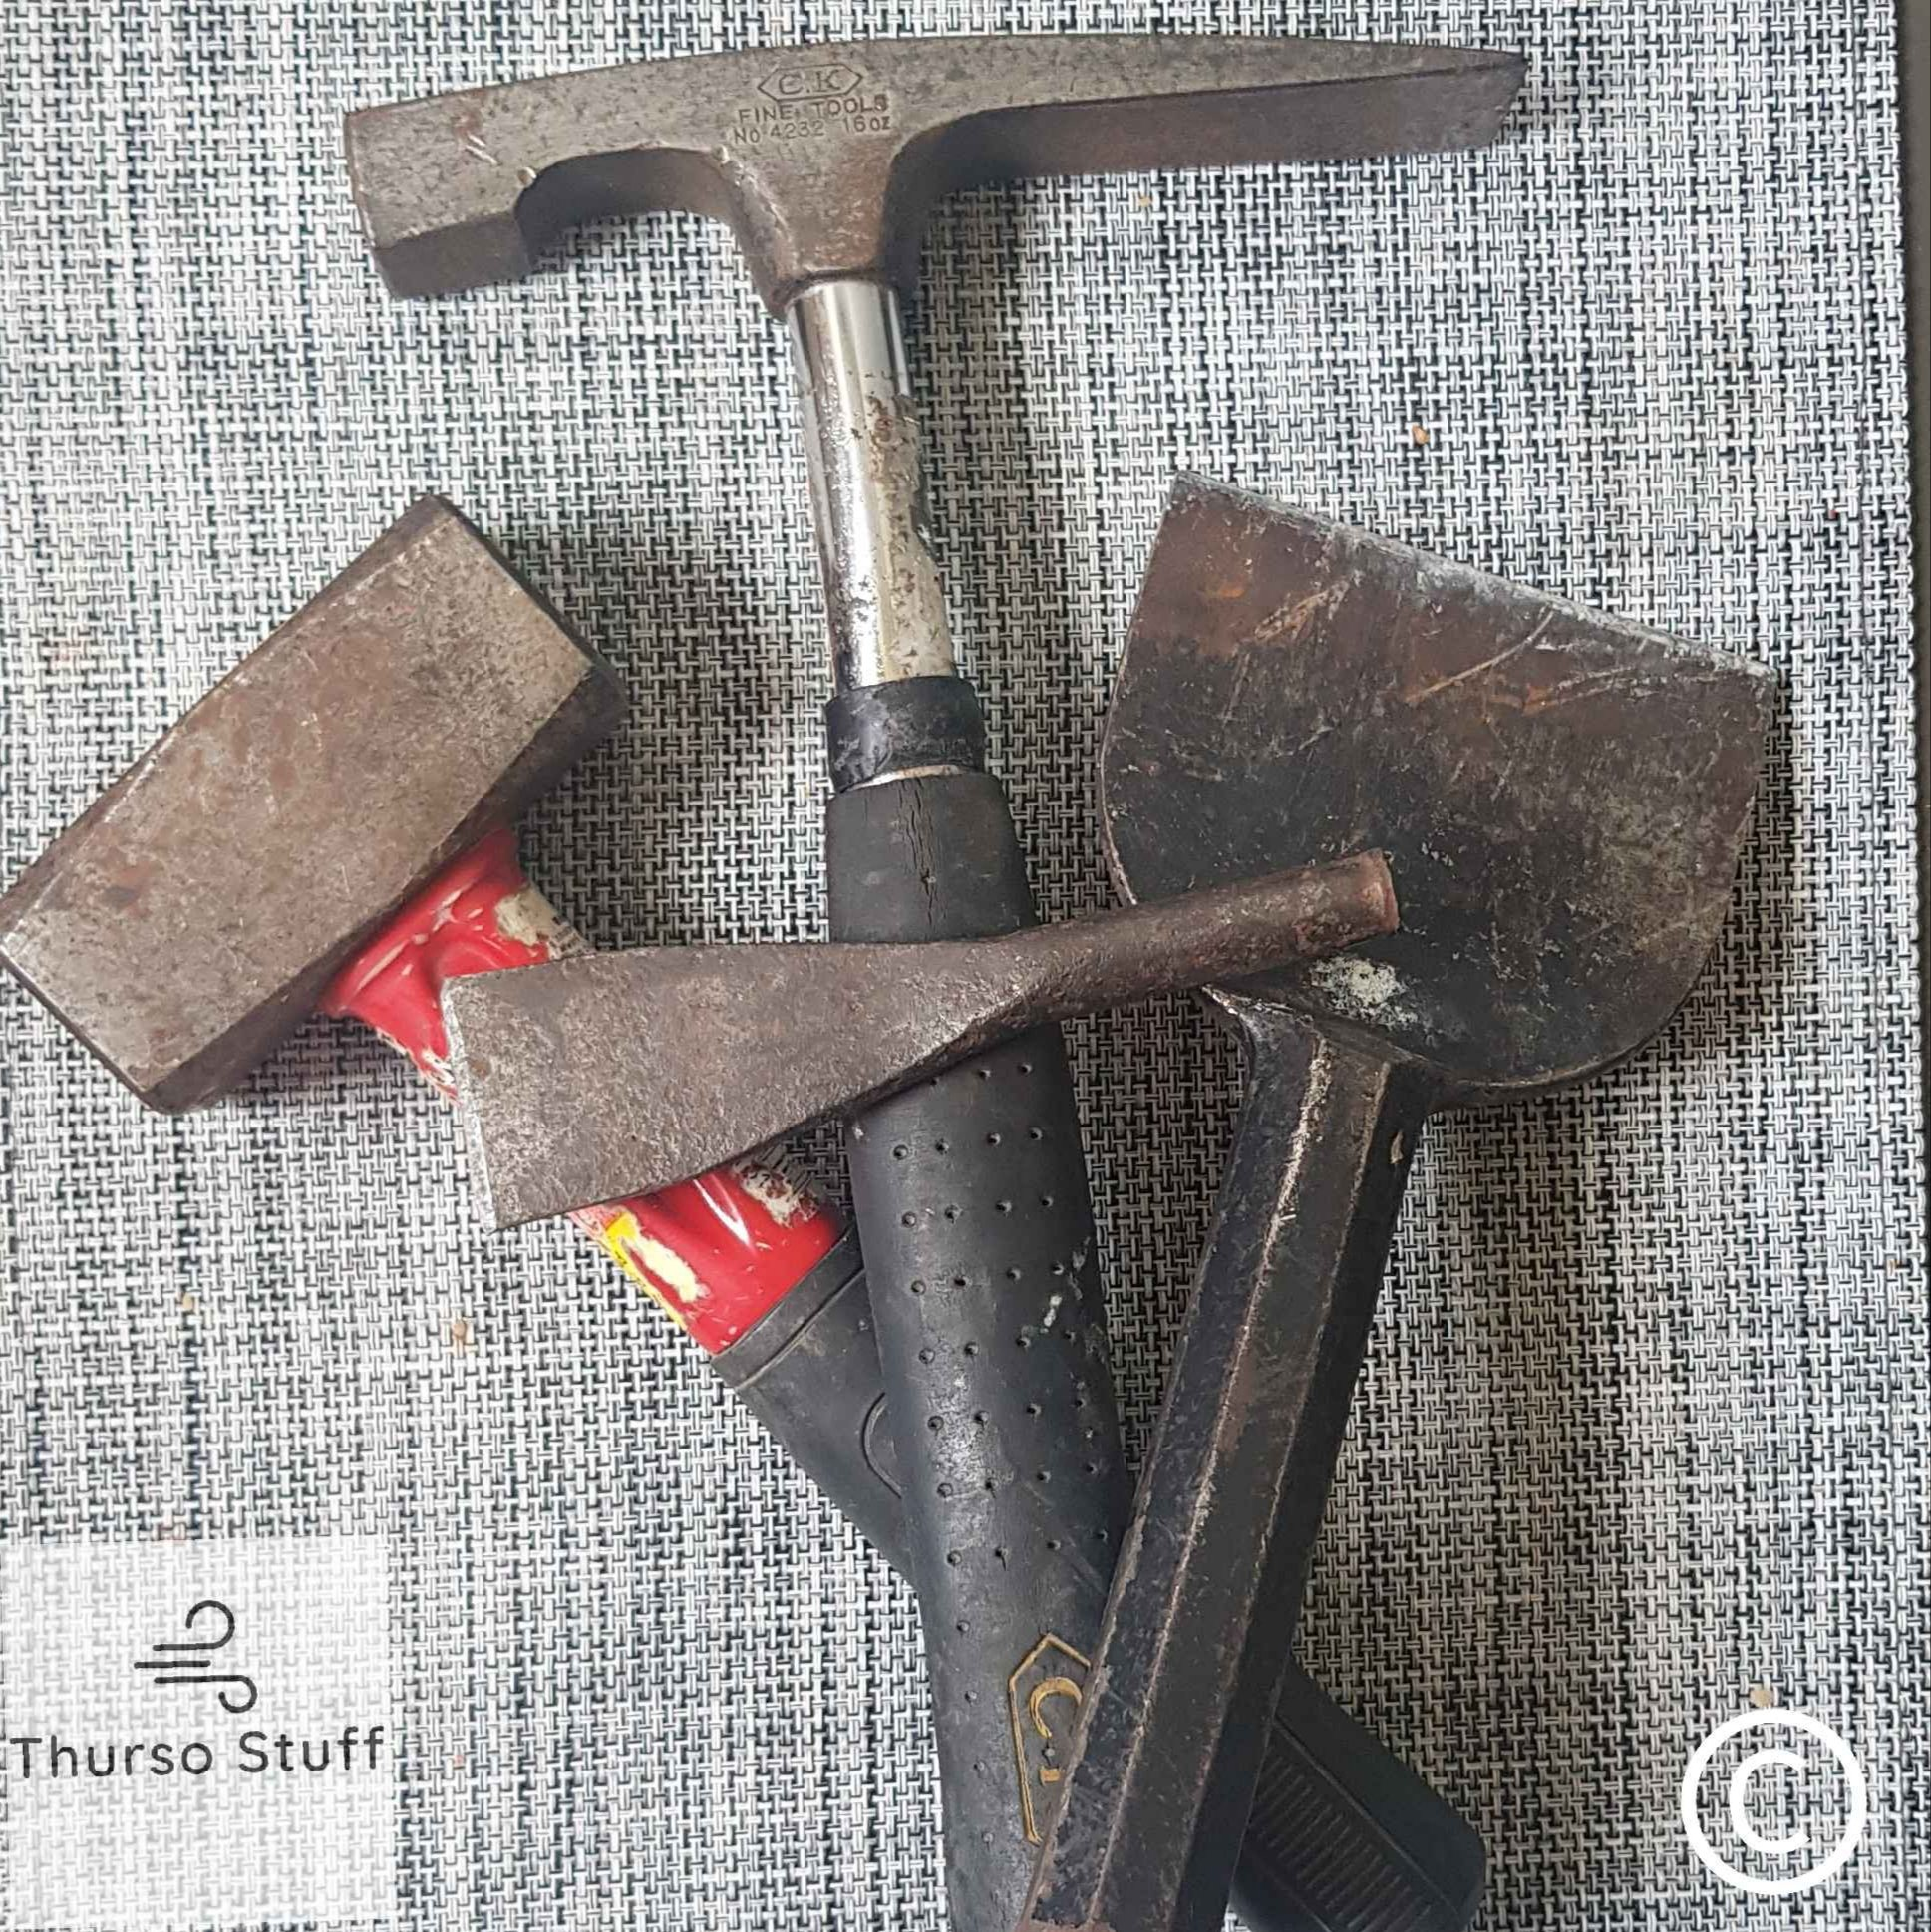 A collection of fossil hunting tools